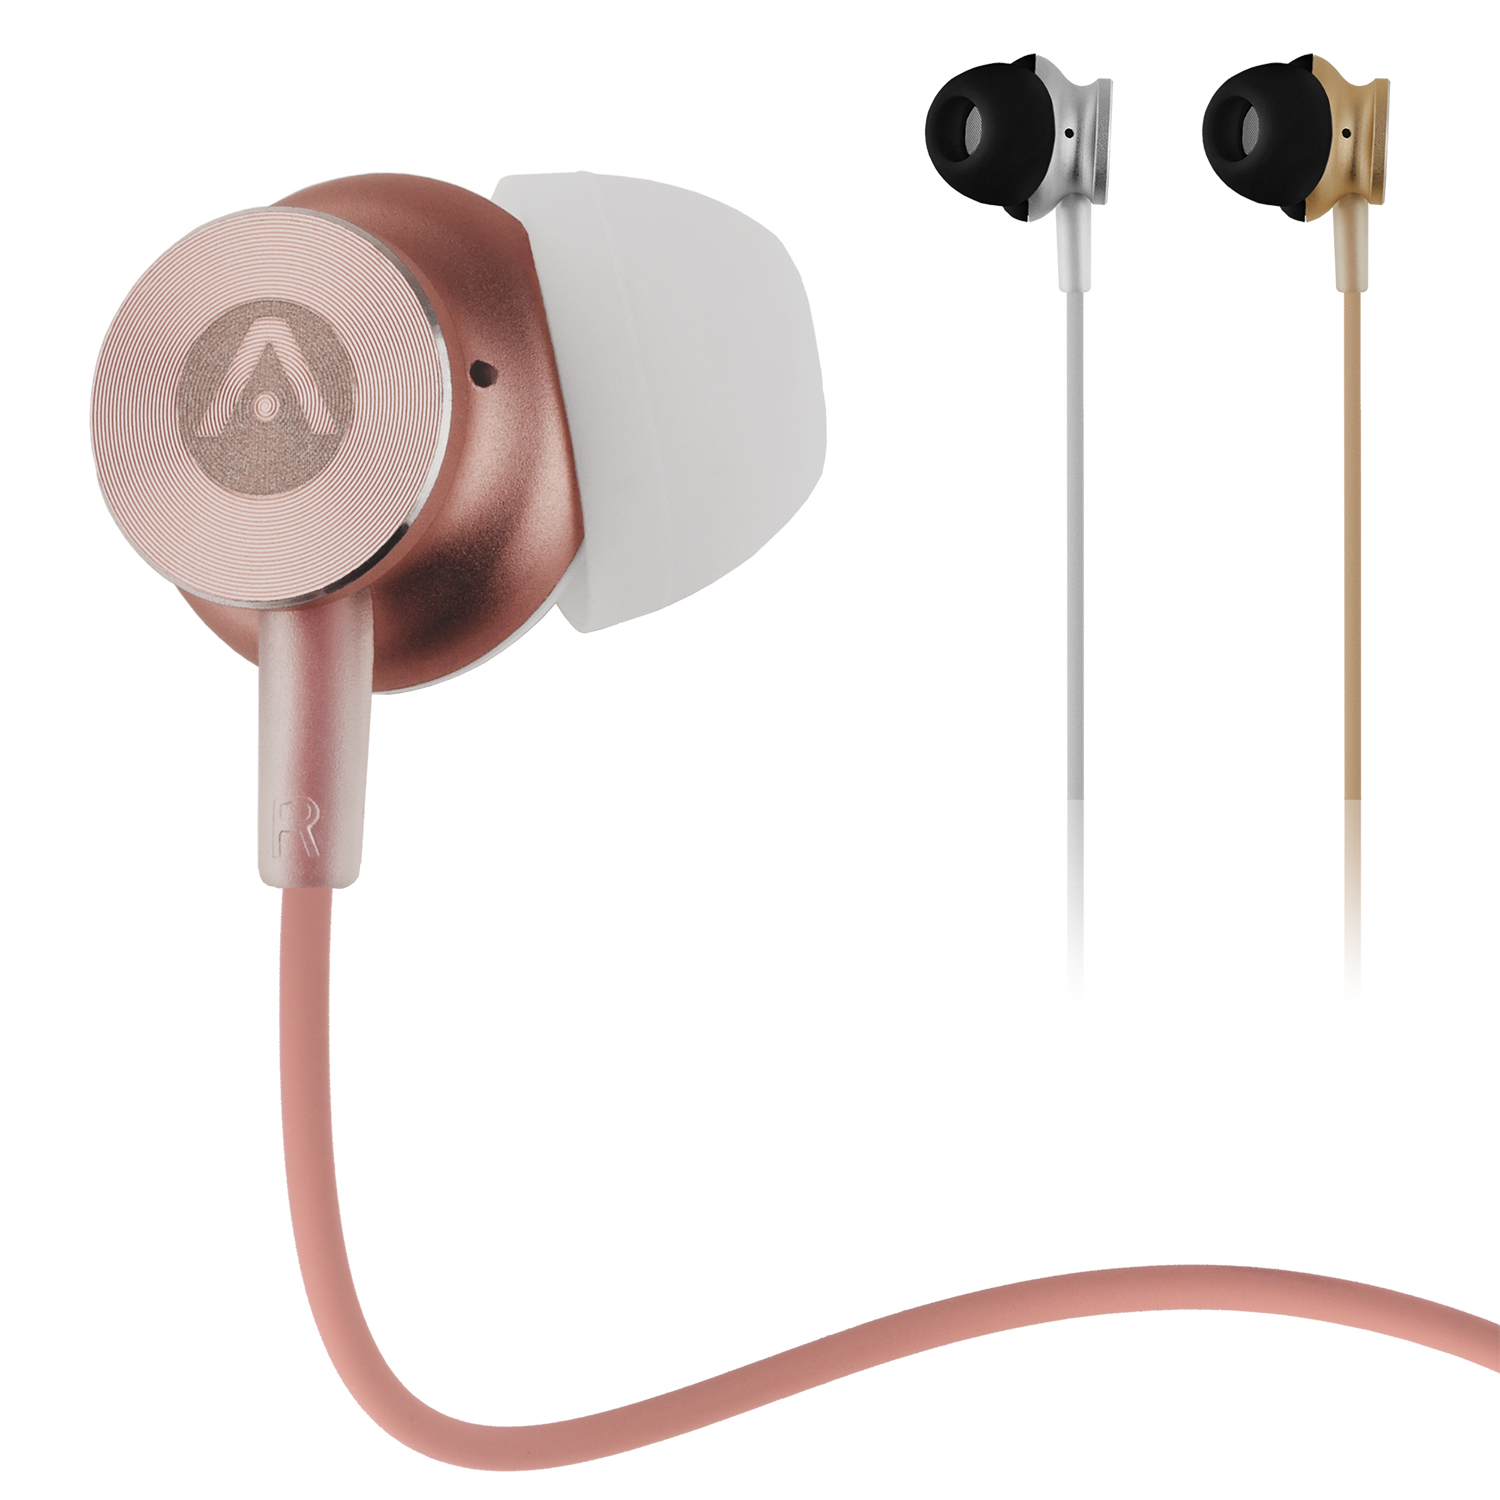 Audiomate A180 Dynamic Hi-Fi Stereo Metal 3.5mm Earphone Earbuds for iPhone, Android